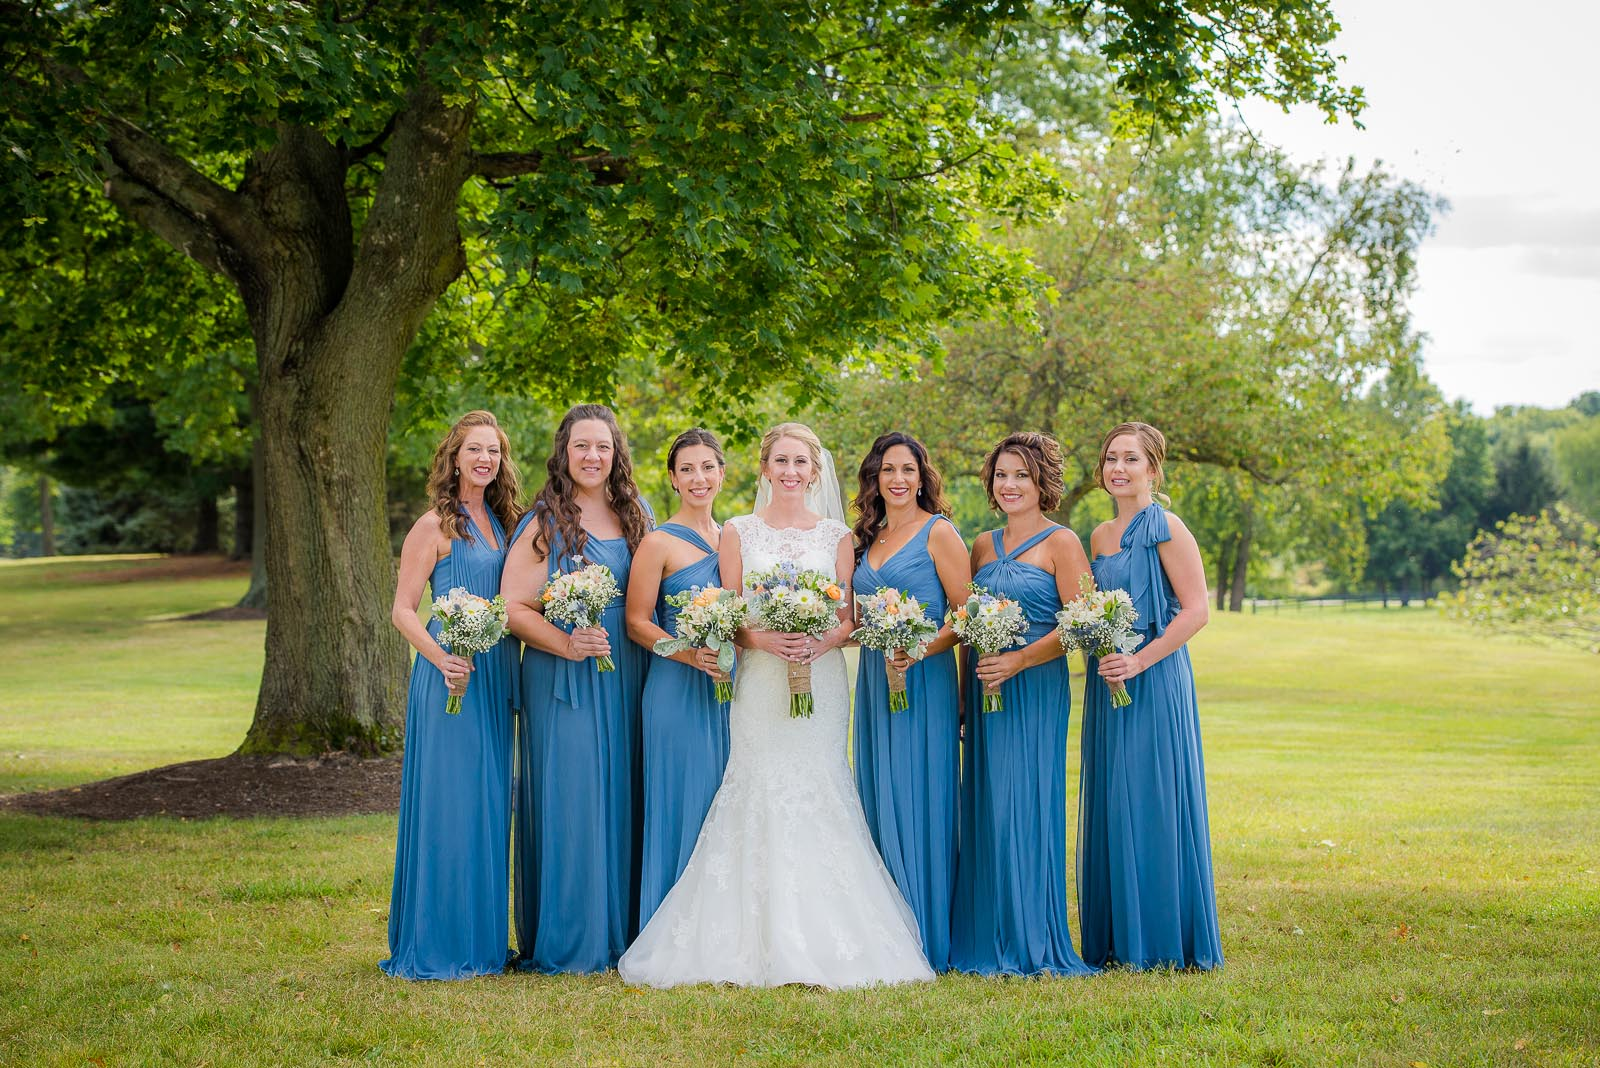 Eric_and_Christy_Photography_Blog_Wedding_Kelly_Matt-36